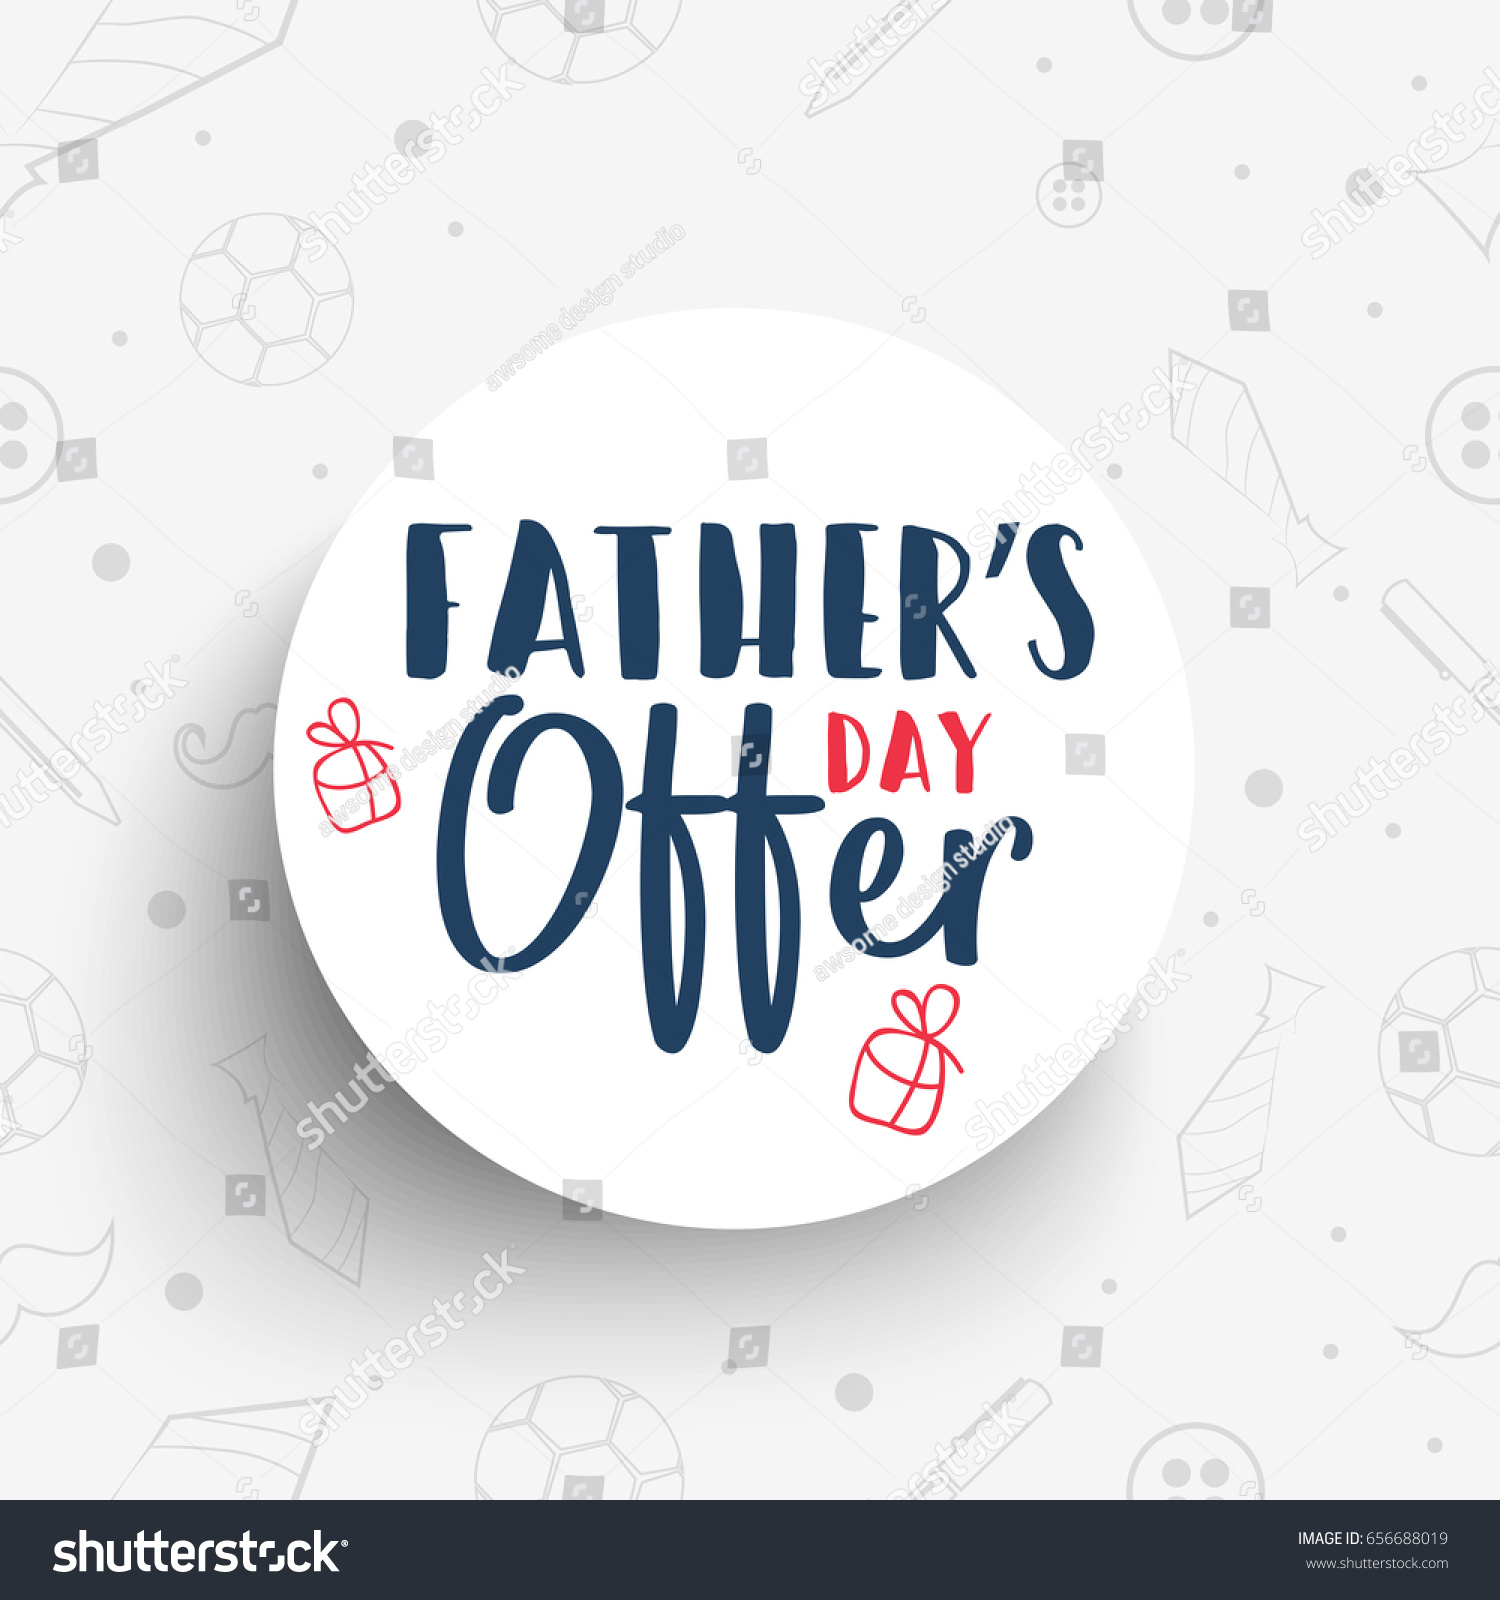 fac09acdb09d6 Fathers Day Sale Promotion Background Poster Bannersocial Media ...